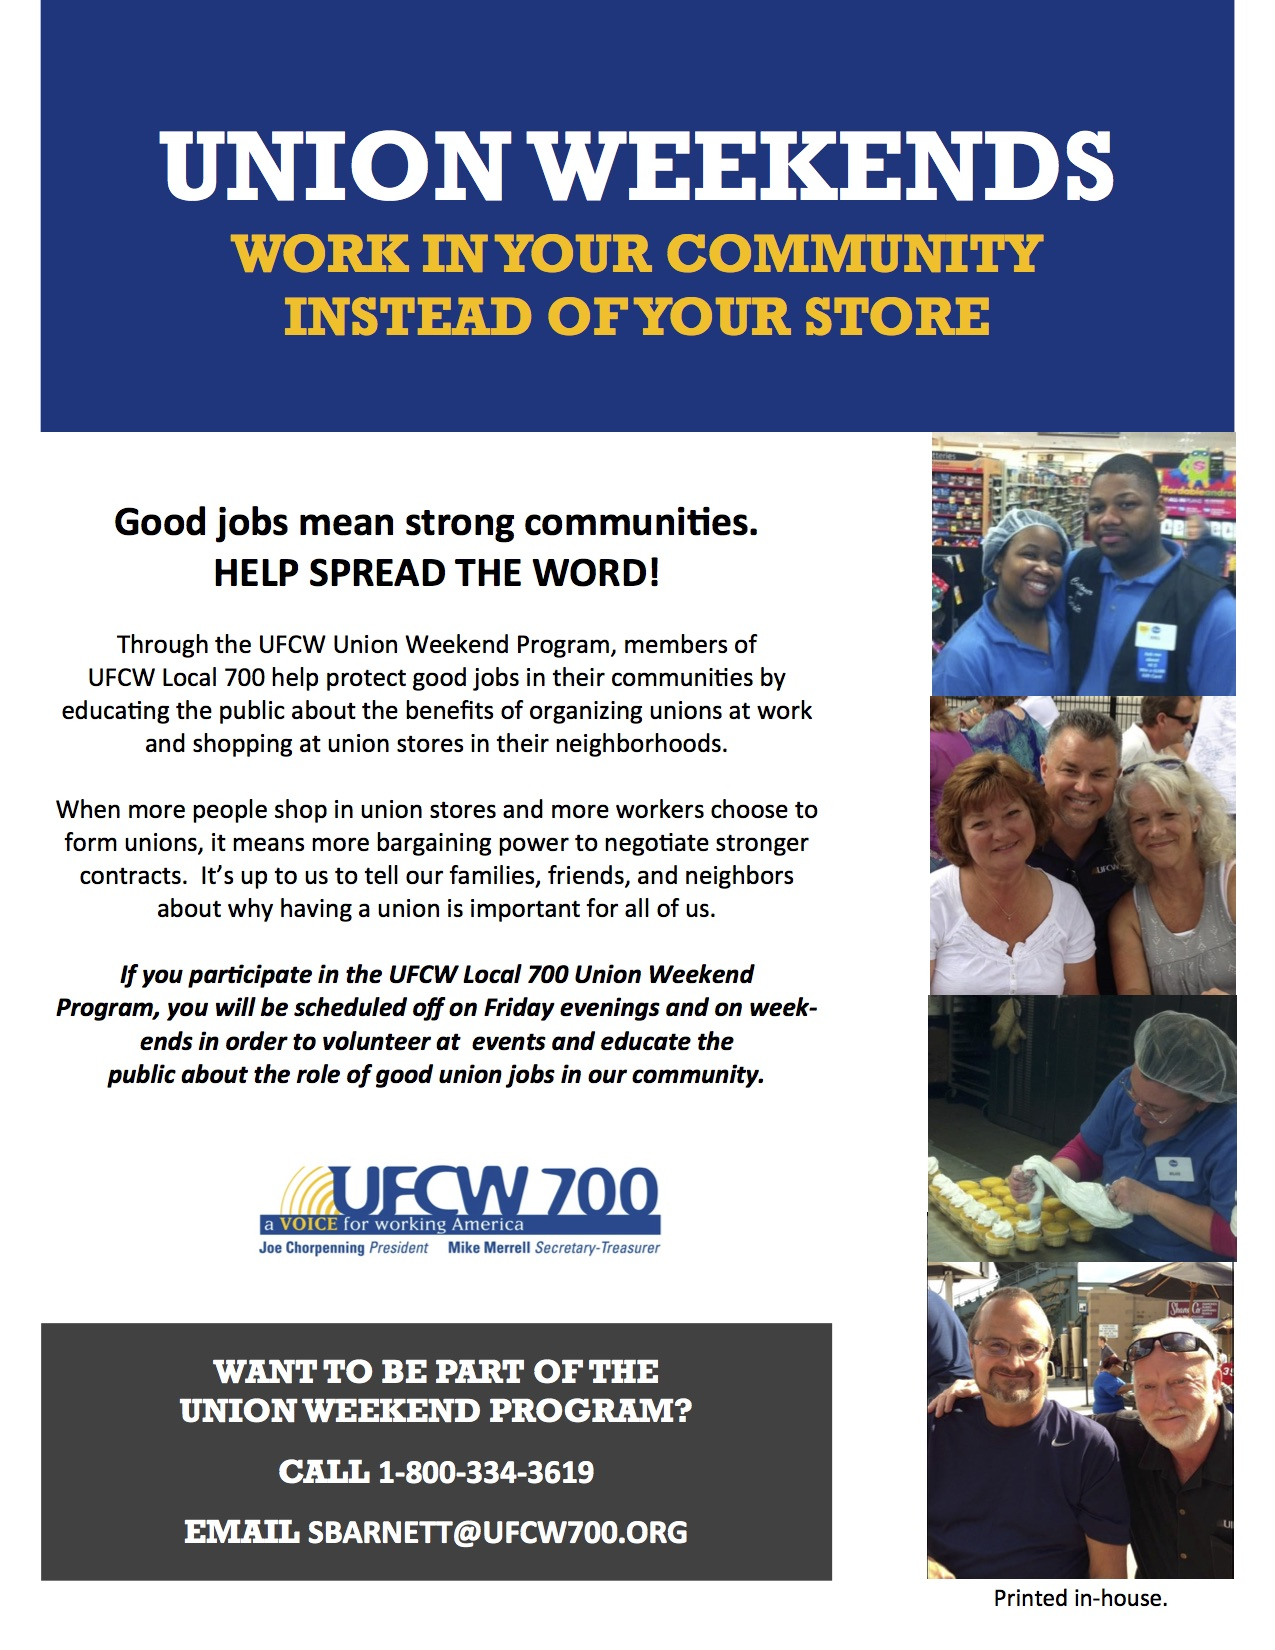 Uncategorized | UFCW Local 700